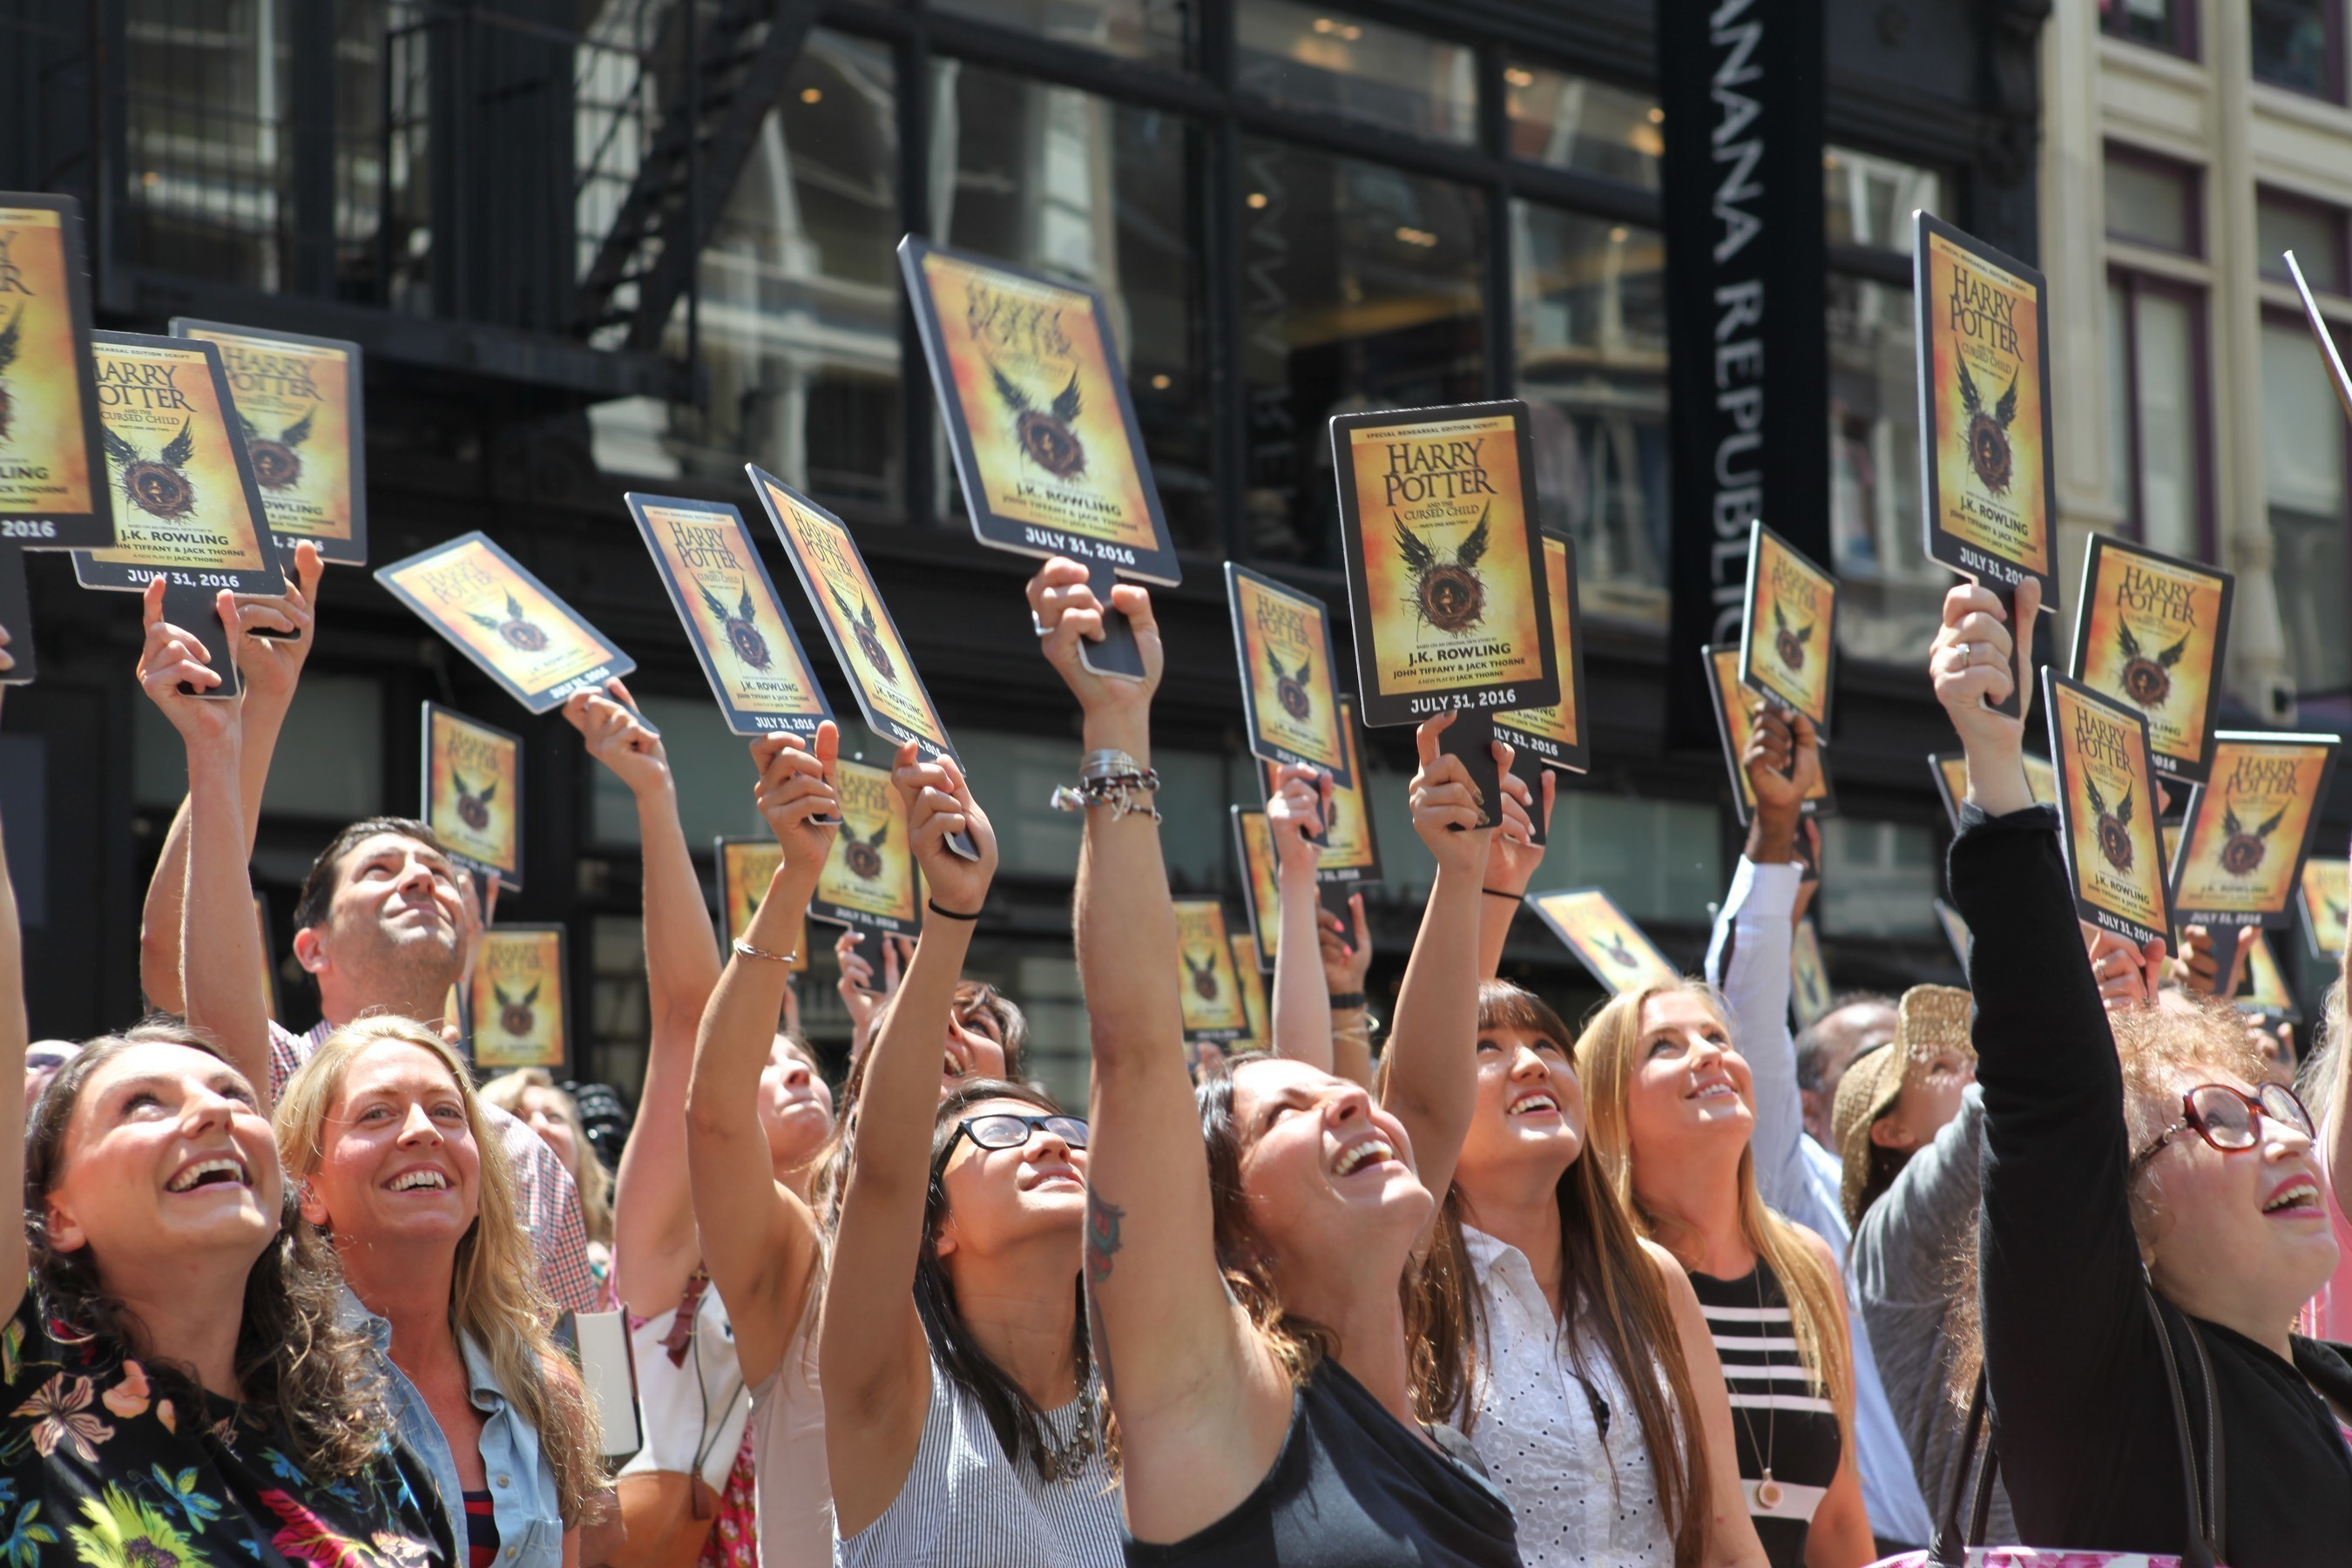 """On July 21, a """"Muggle Mob"""" of 300 Harry Potter fans fills the street in front of the Scholastic headquarters building in New York City to celebrate the upcoming release of """"Harry Potter and the Cursed Child Parts One and Two,"""" the eighth story, on July 31, 2016 at 12:01 a.m. ET. Credit: Scholastic"""